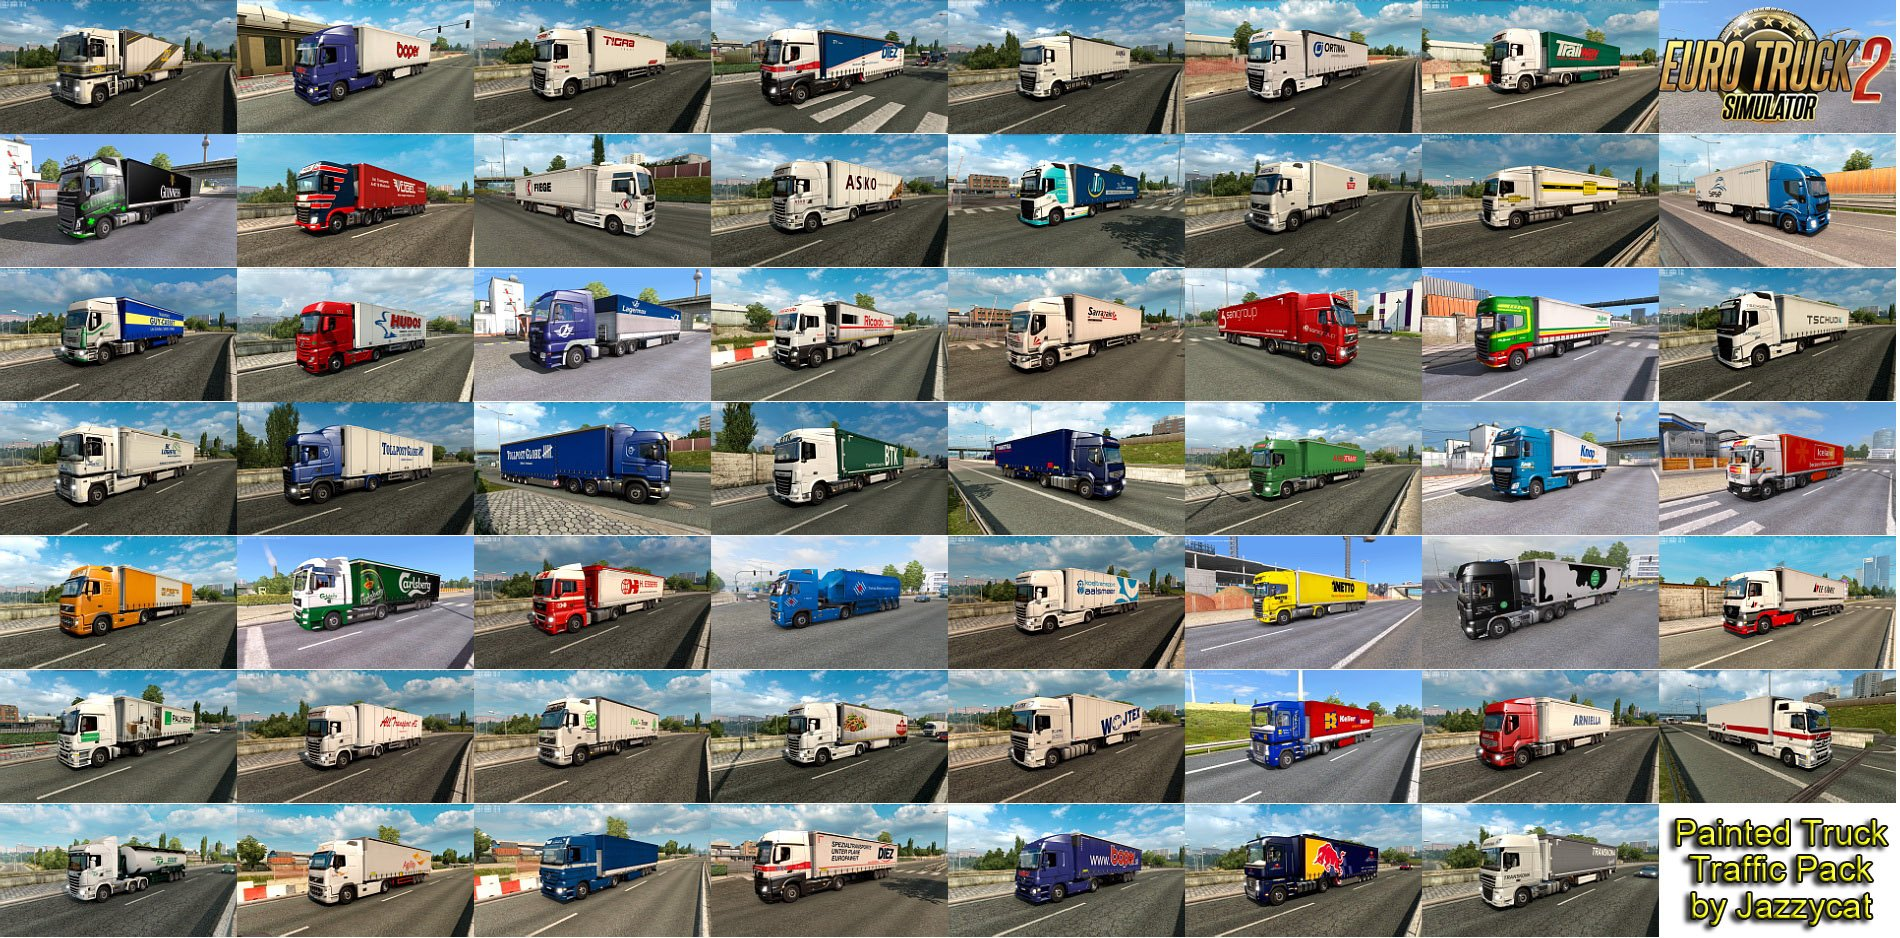 Painted Truck Traffic Pack v5.5 by Jazzycat